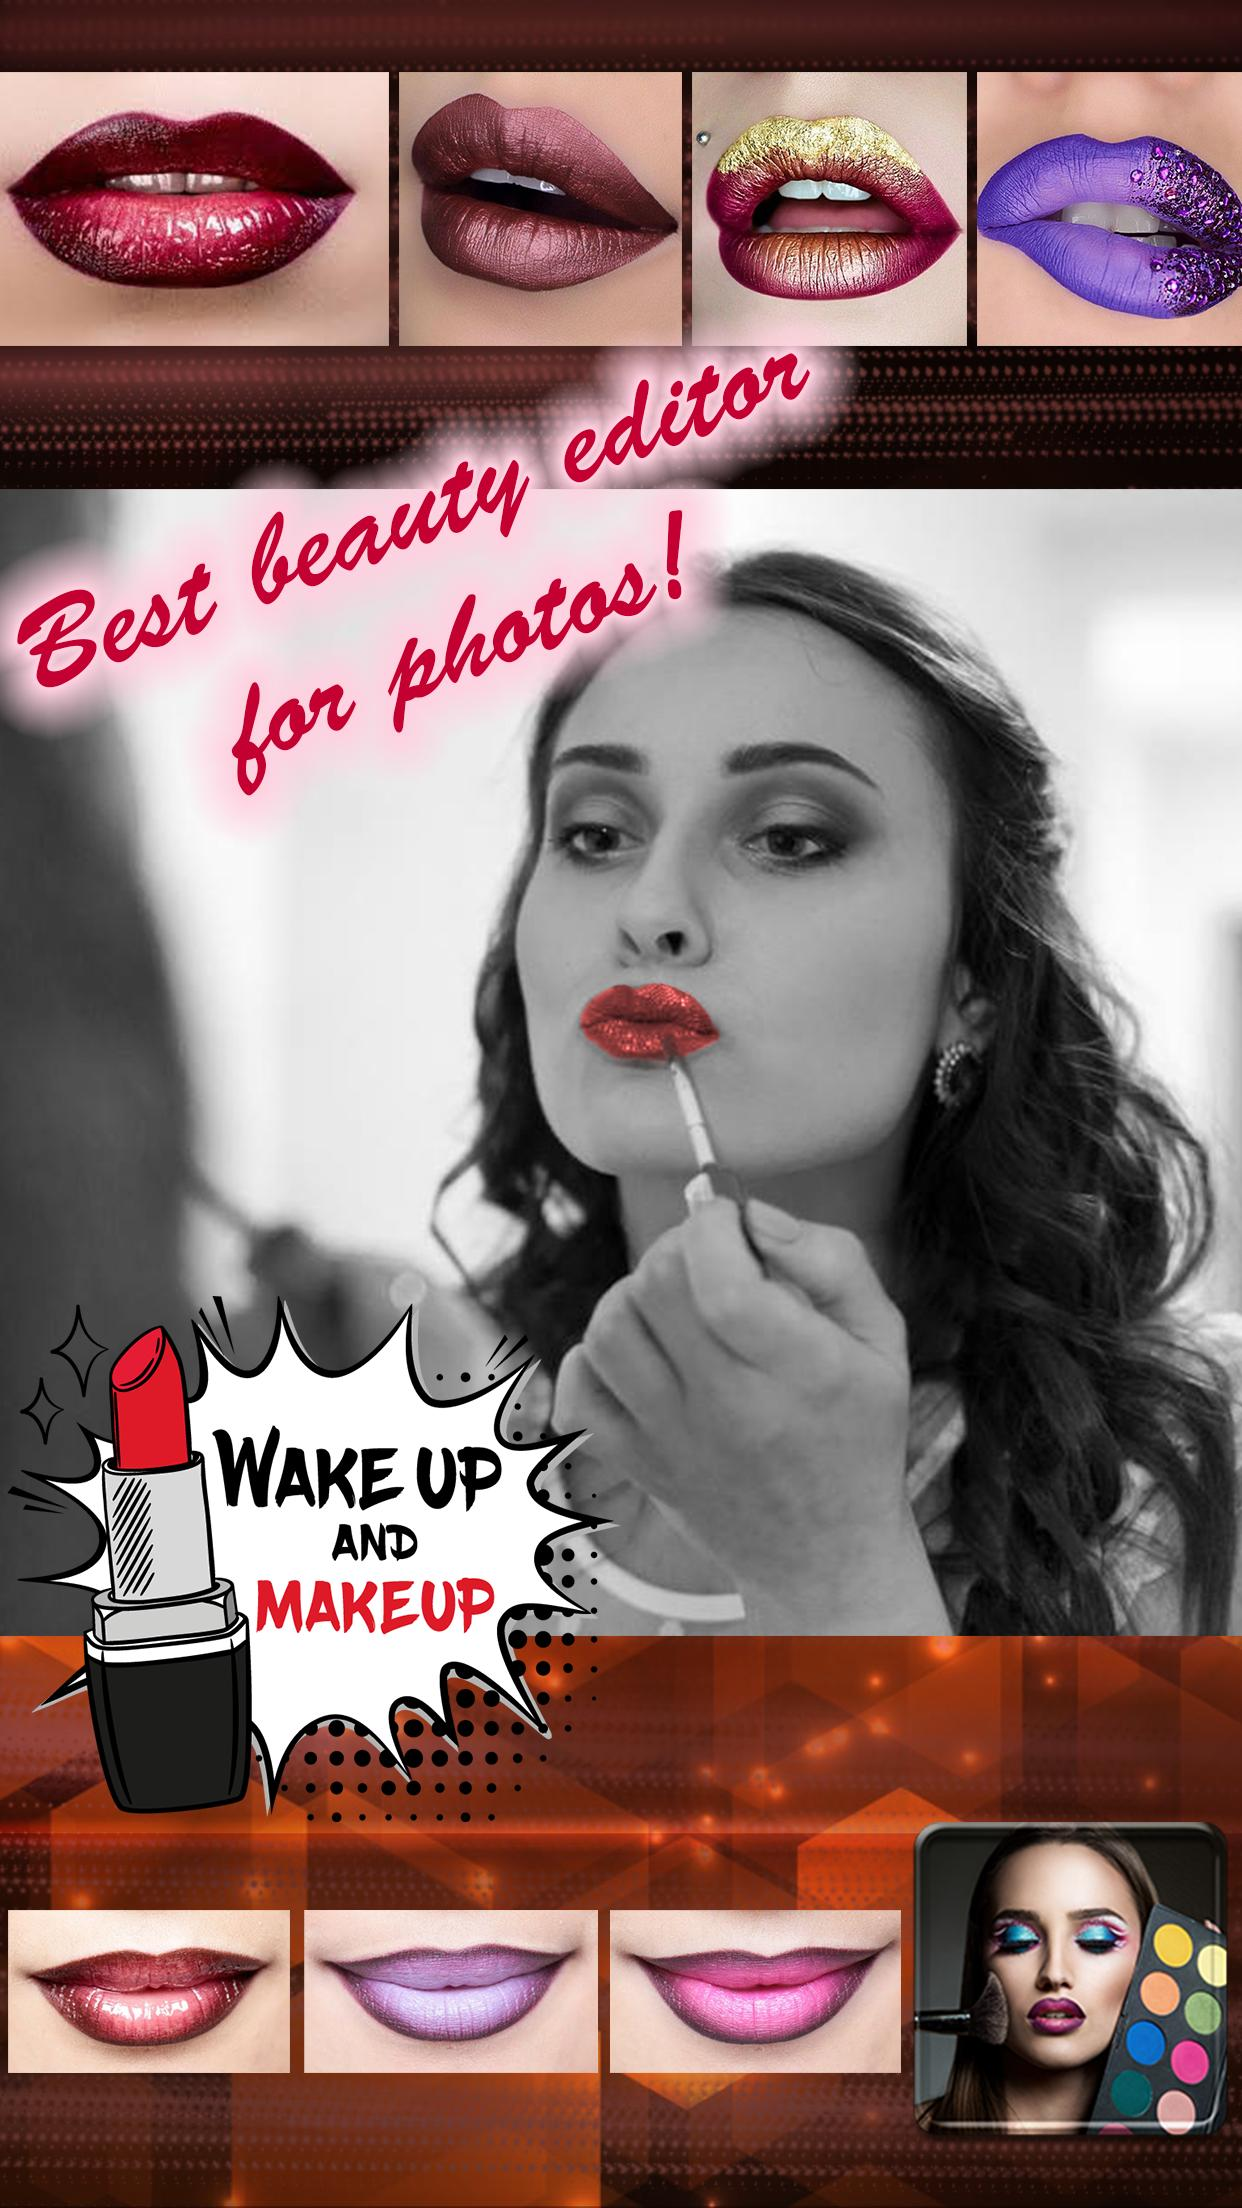 Makeup Photo Editor For Girls - Face Beauty App for Android